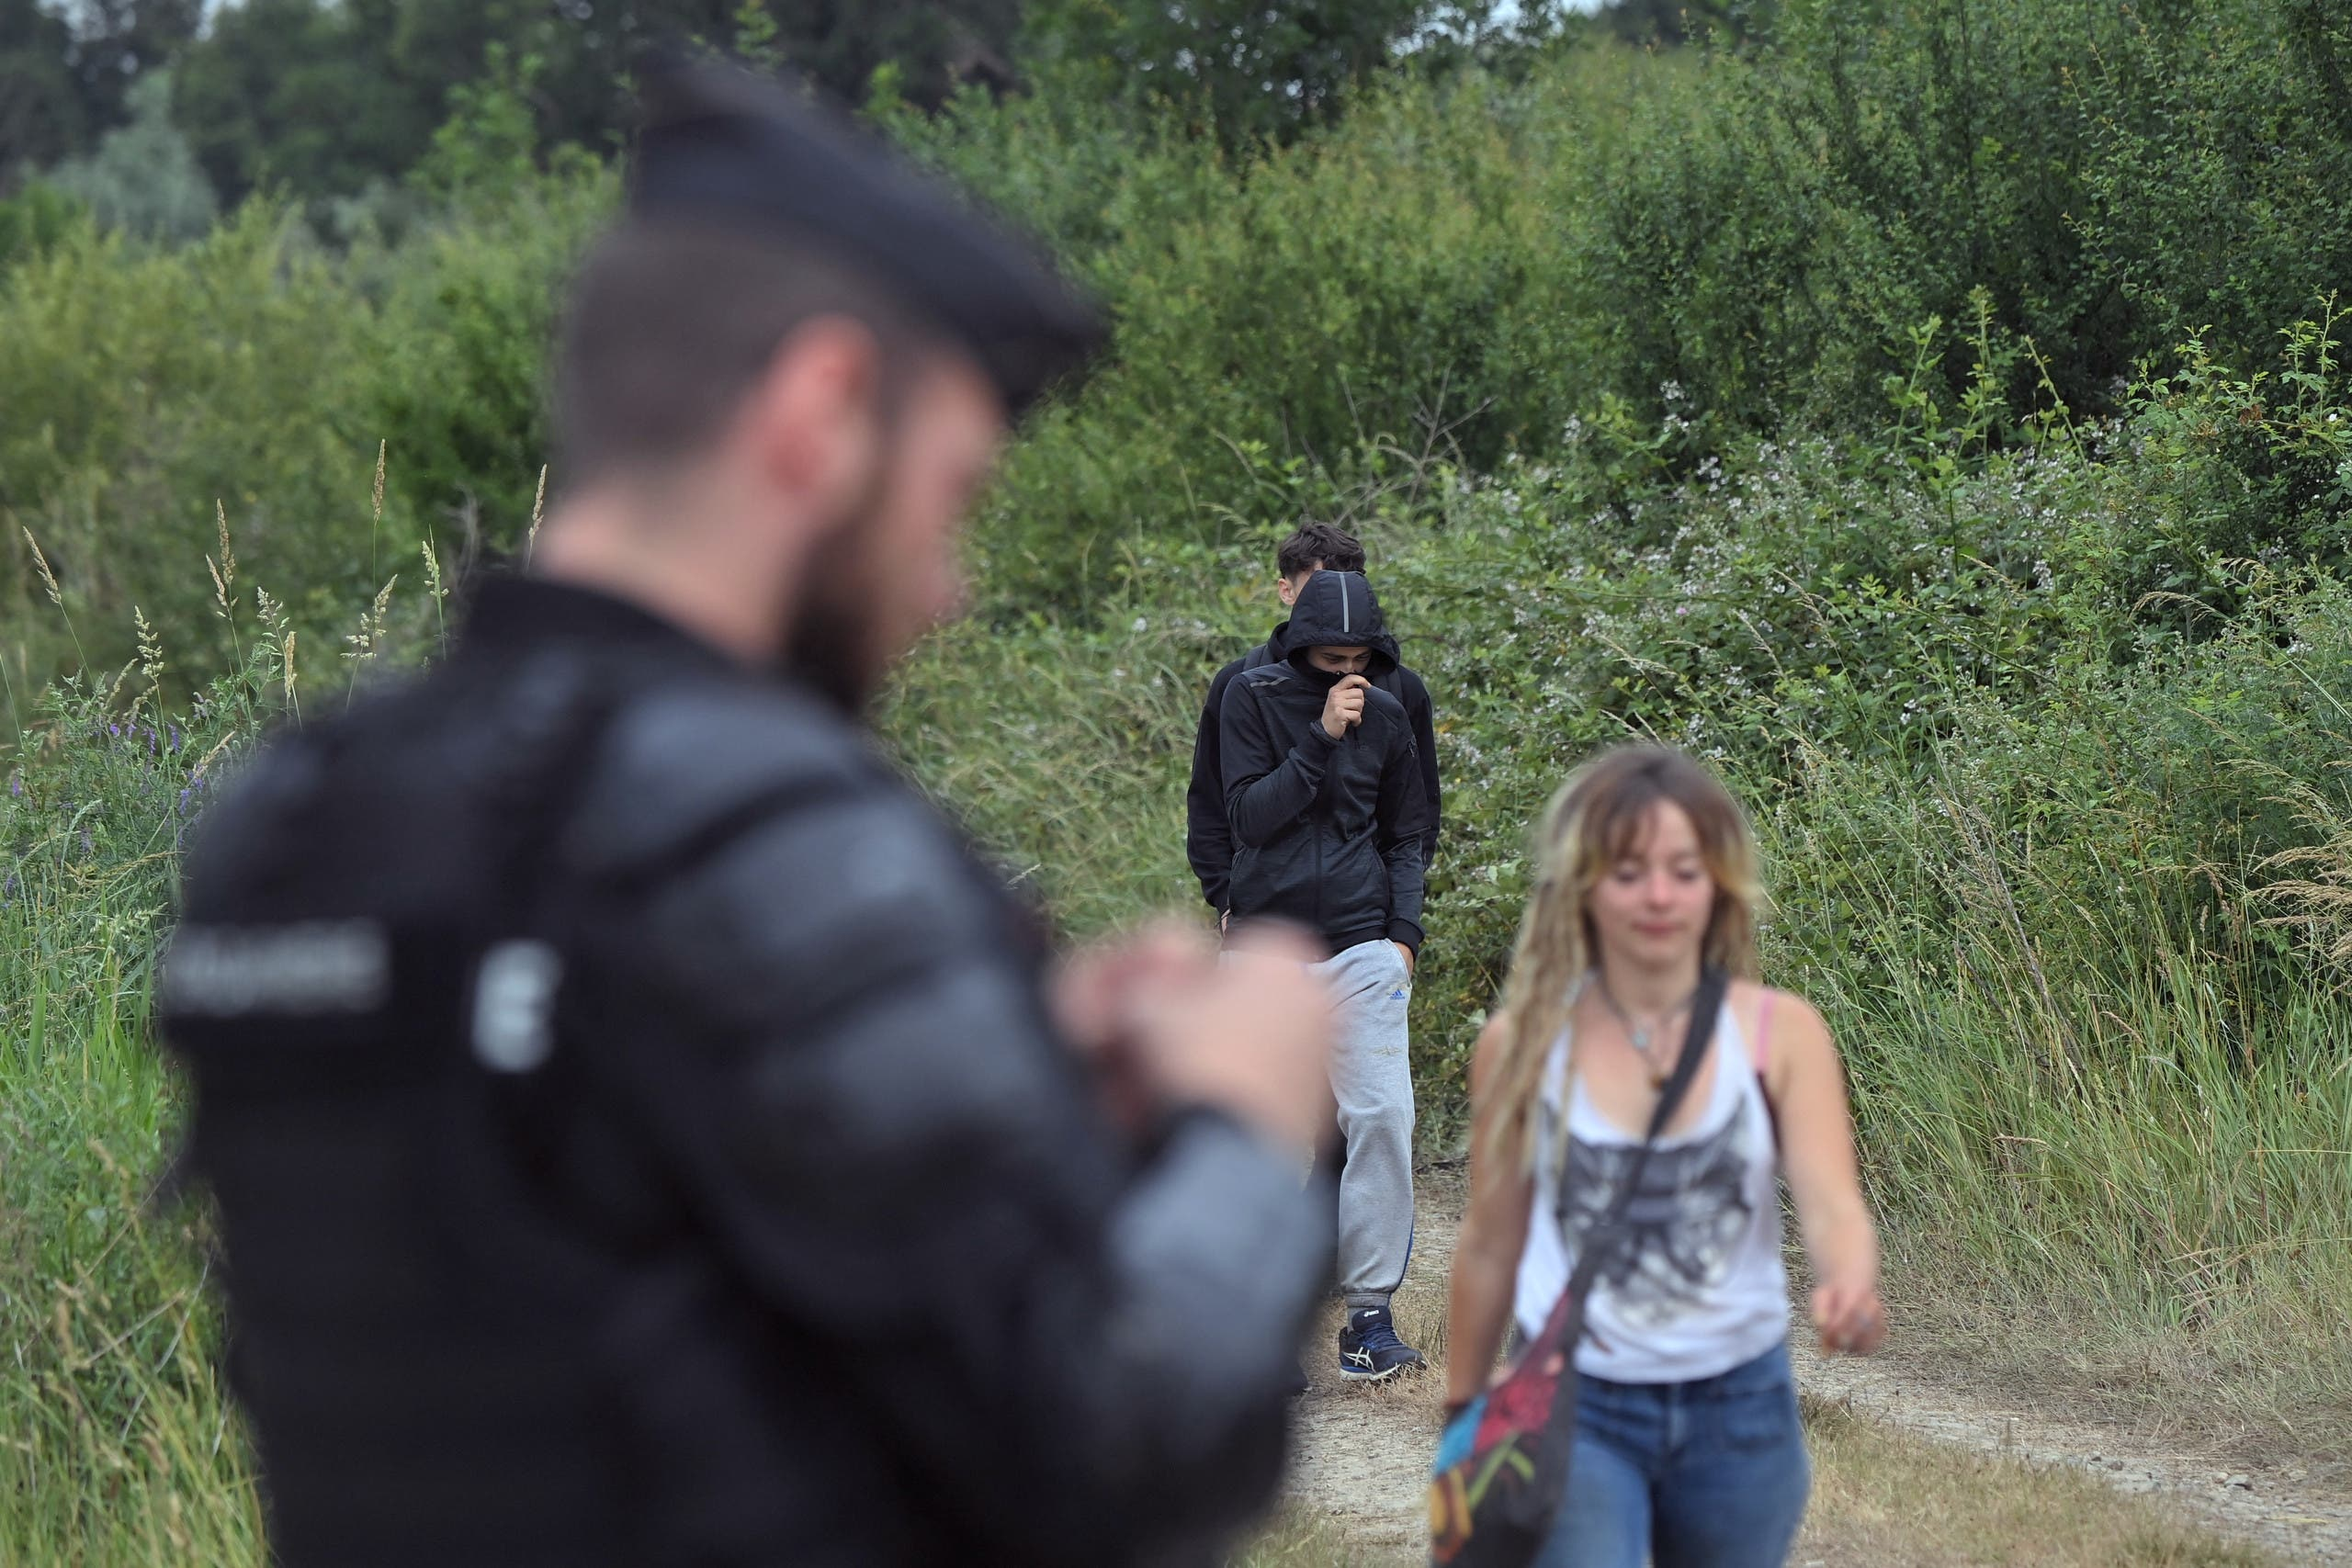 French gendarmes stand on a road, in Redon, north-western France, on June 19, 2021, as they intervene to prevent an illegal rave party, which began during the night of June 18 to June 19, 2021. (AFP)